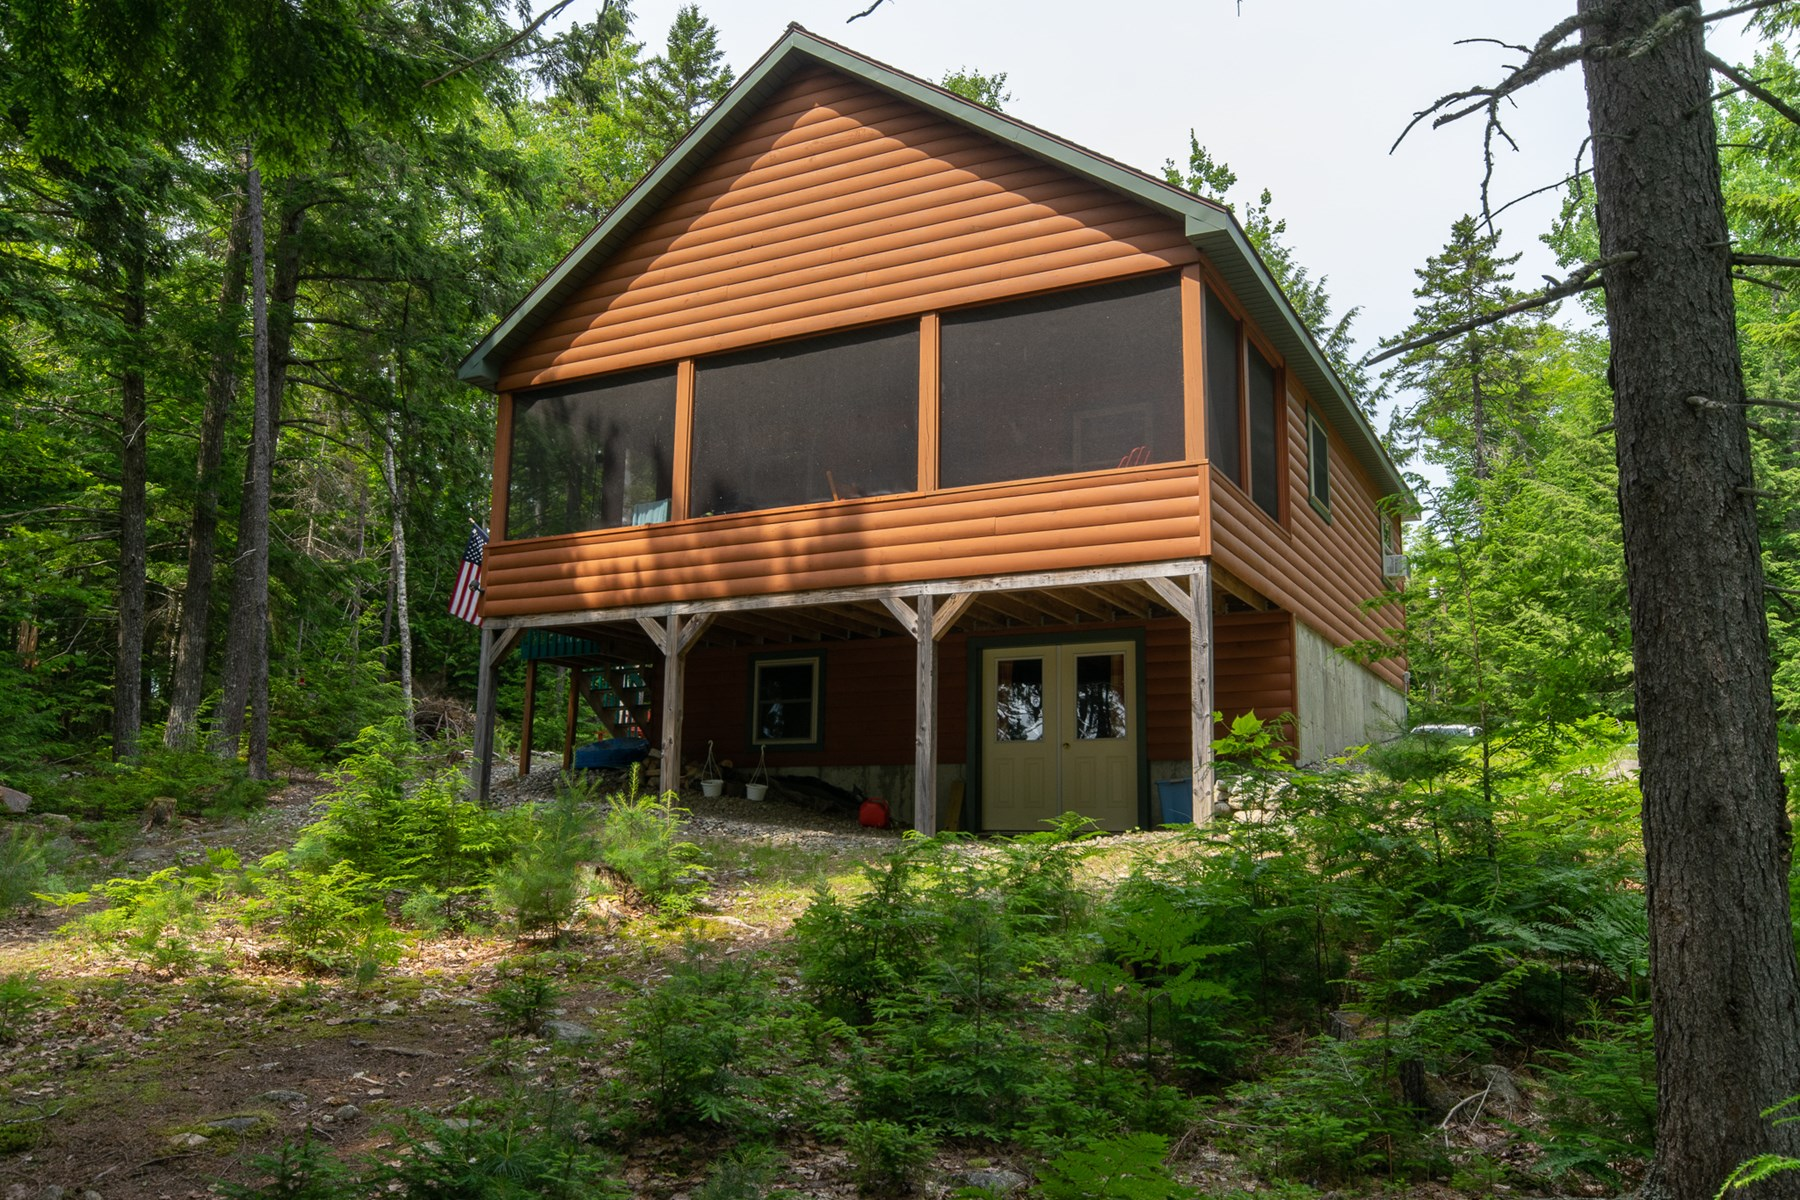 Waterfront Log Cabin For Sale in Lincoln, Maine